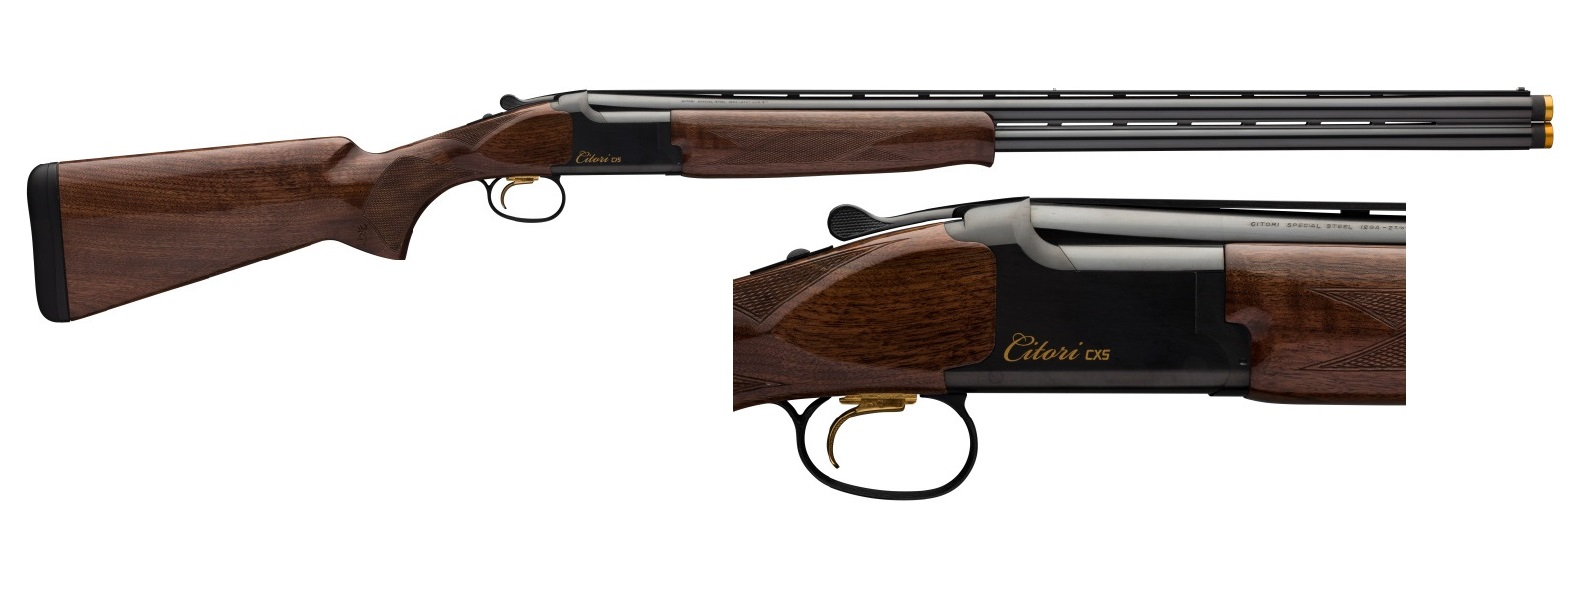 Browning Citori CX (Crossover) 20 Gauge